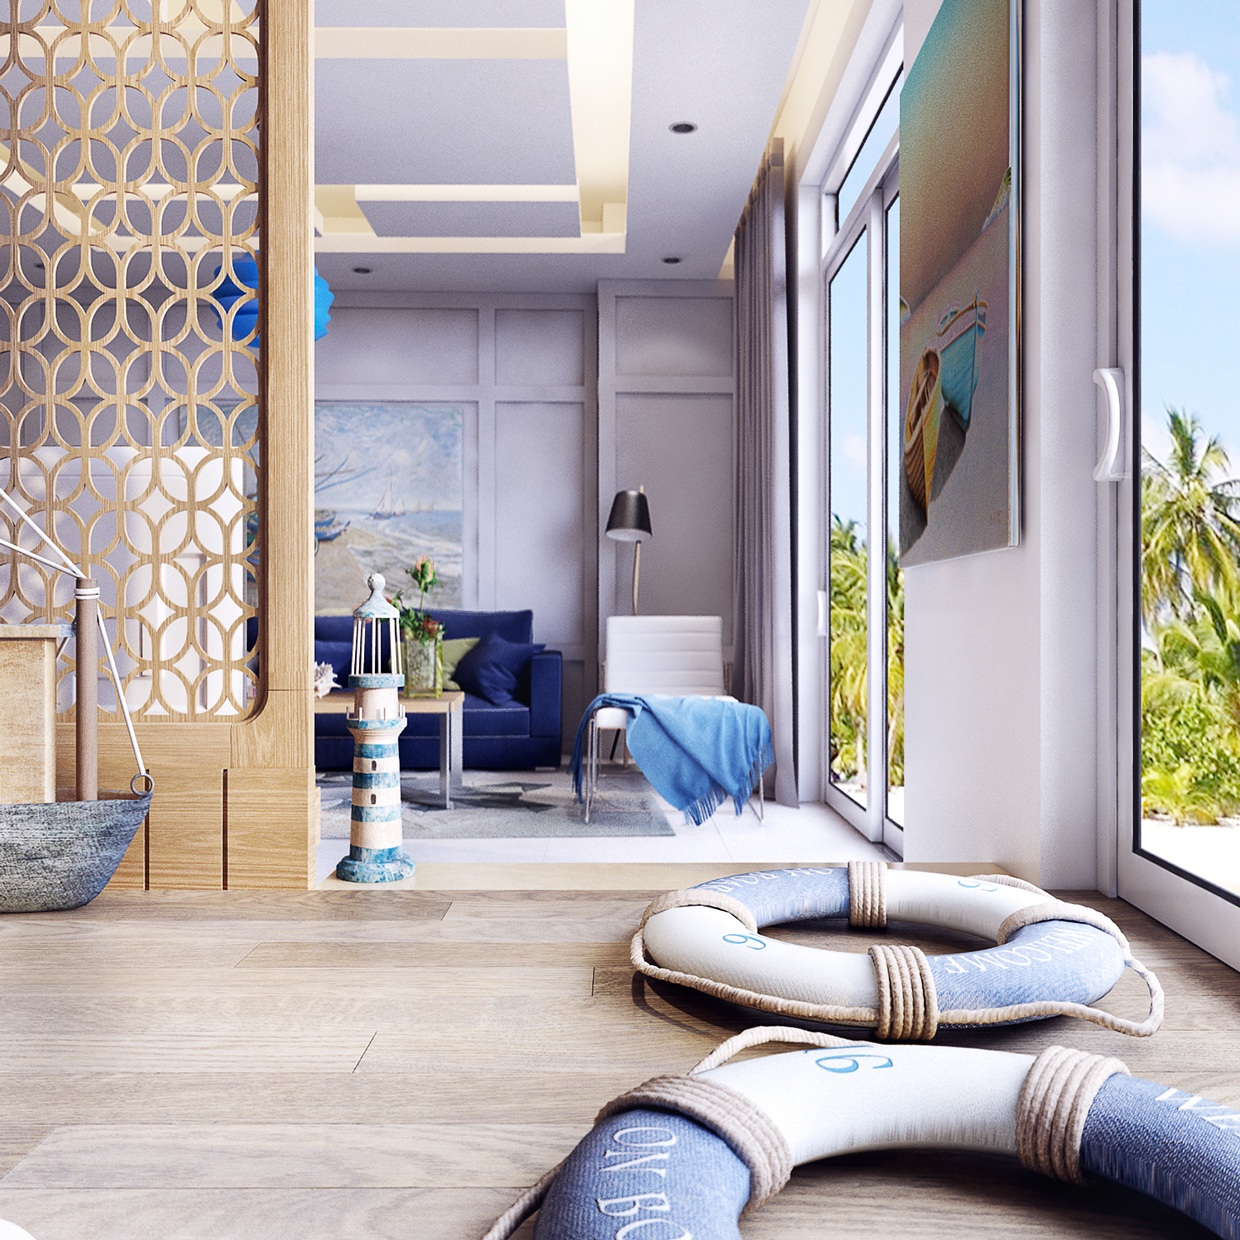 Creative Room Divider Ideas Stunningly Beautiful And Modern Apartments By Koj Design